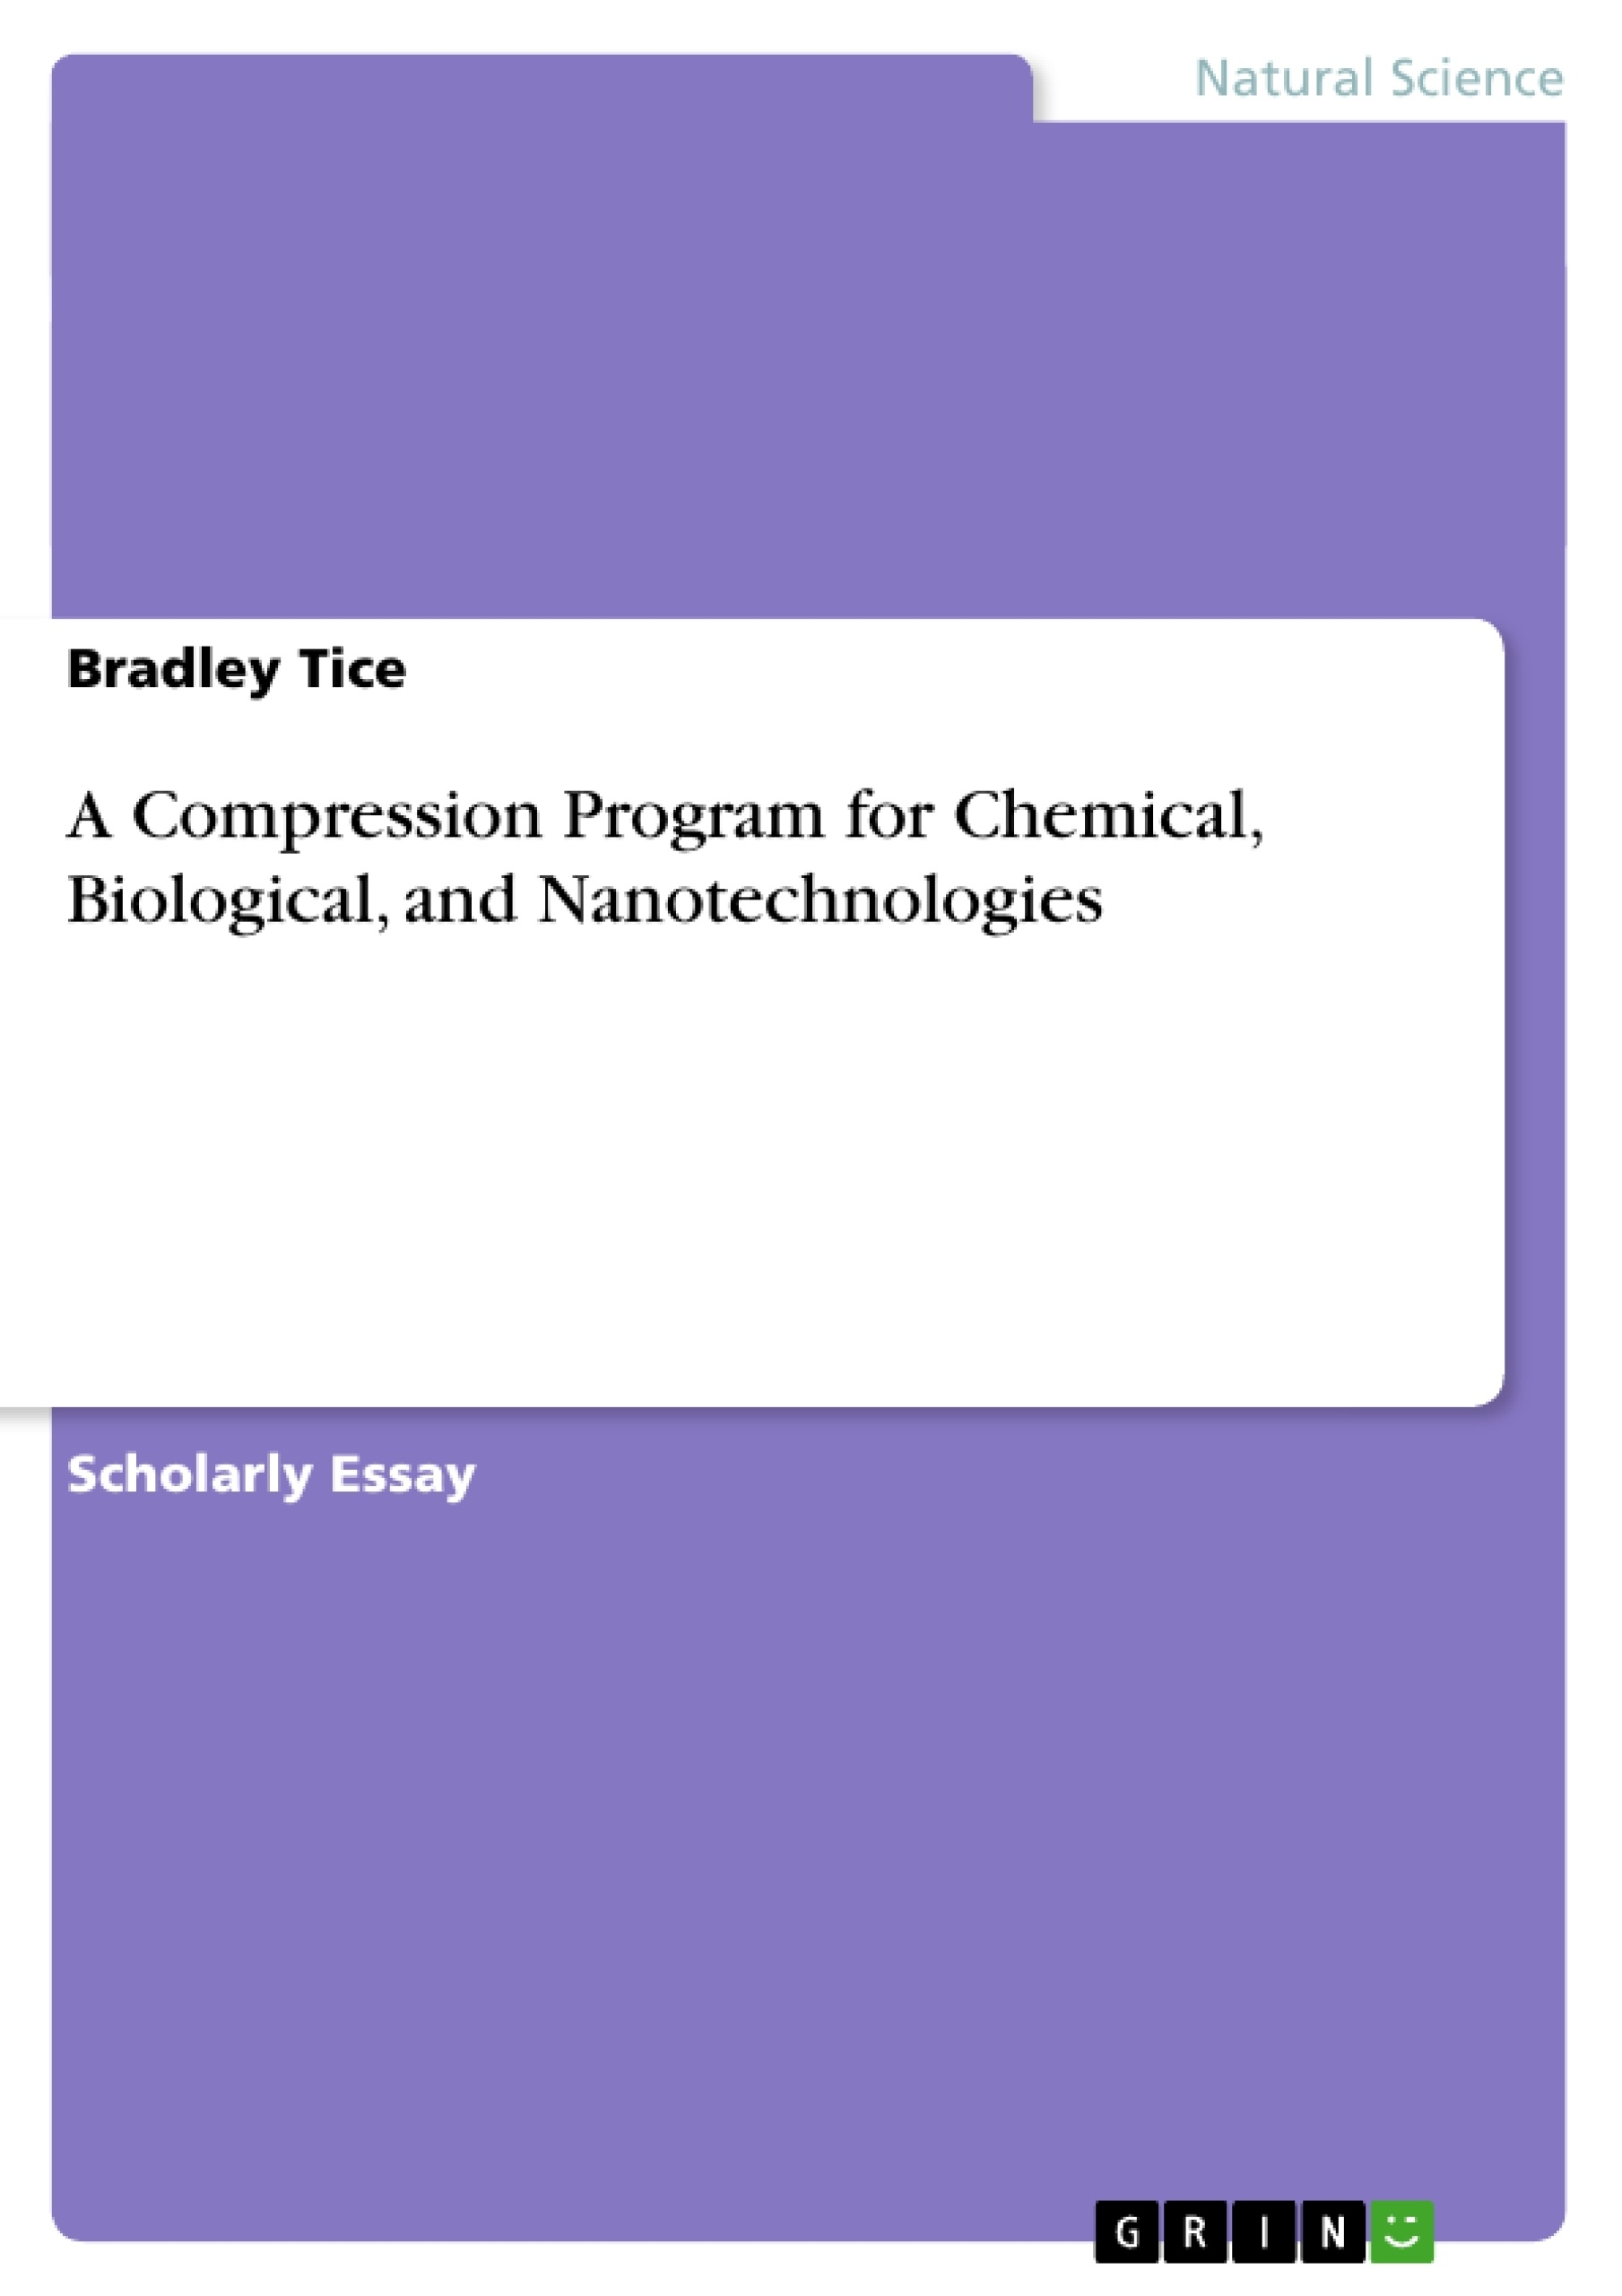 Title: A Compression Program for Chemical, Biological, and Nanotechnologies